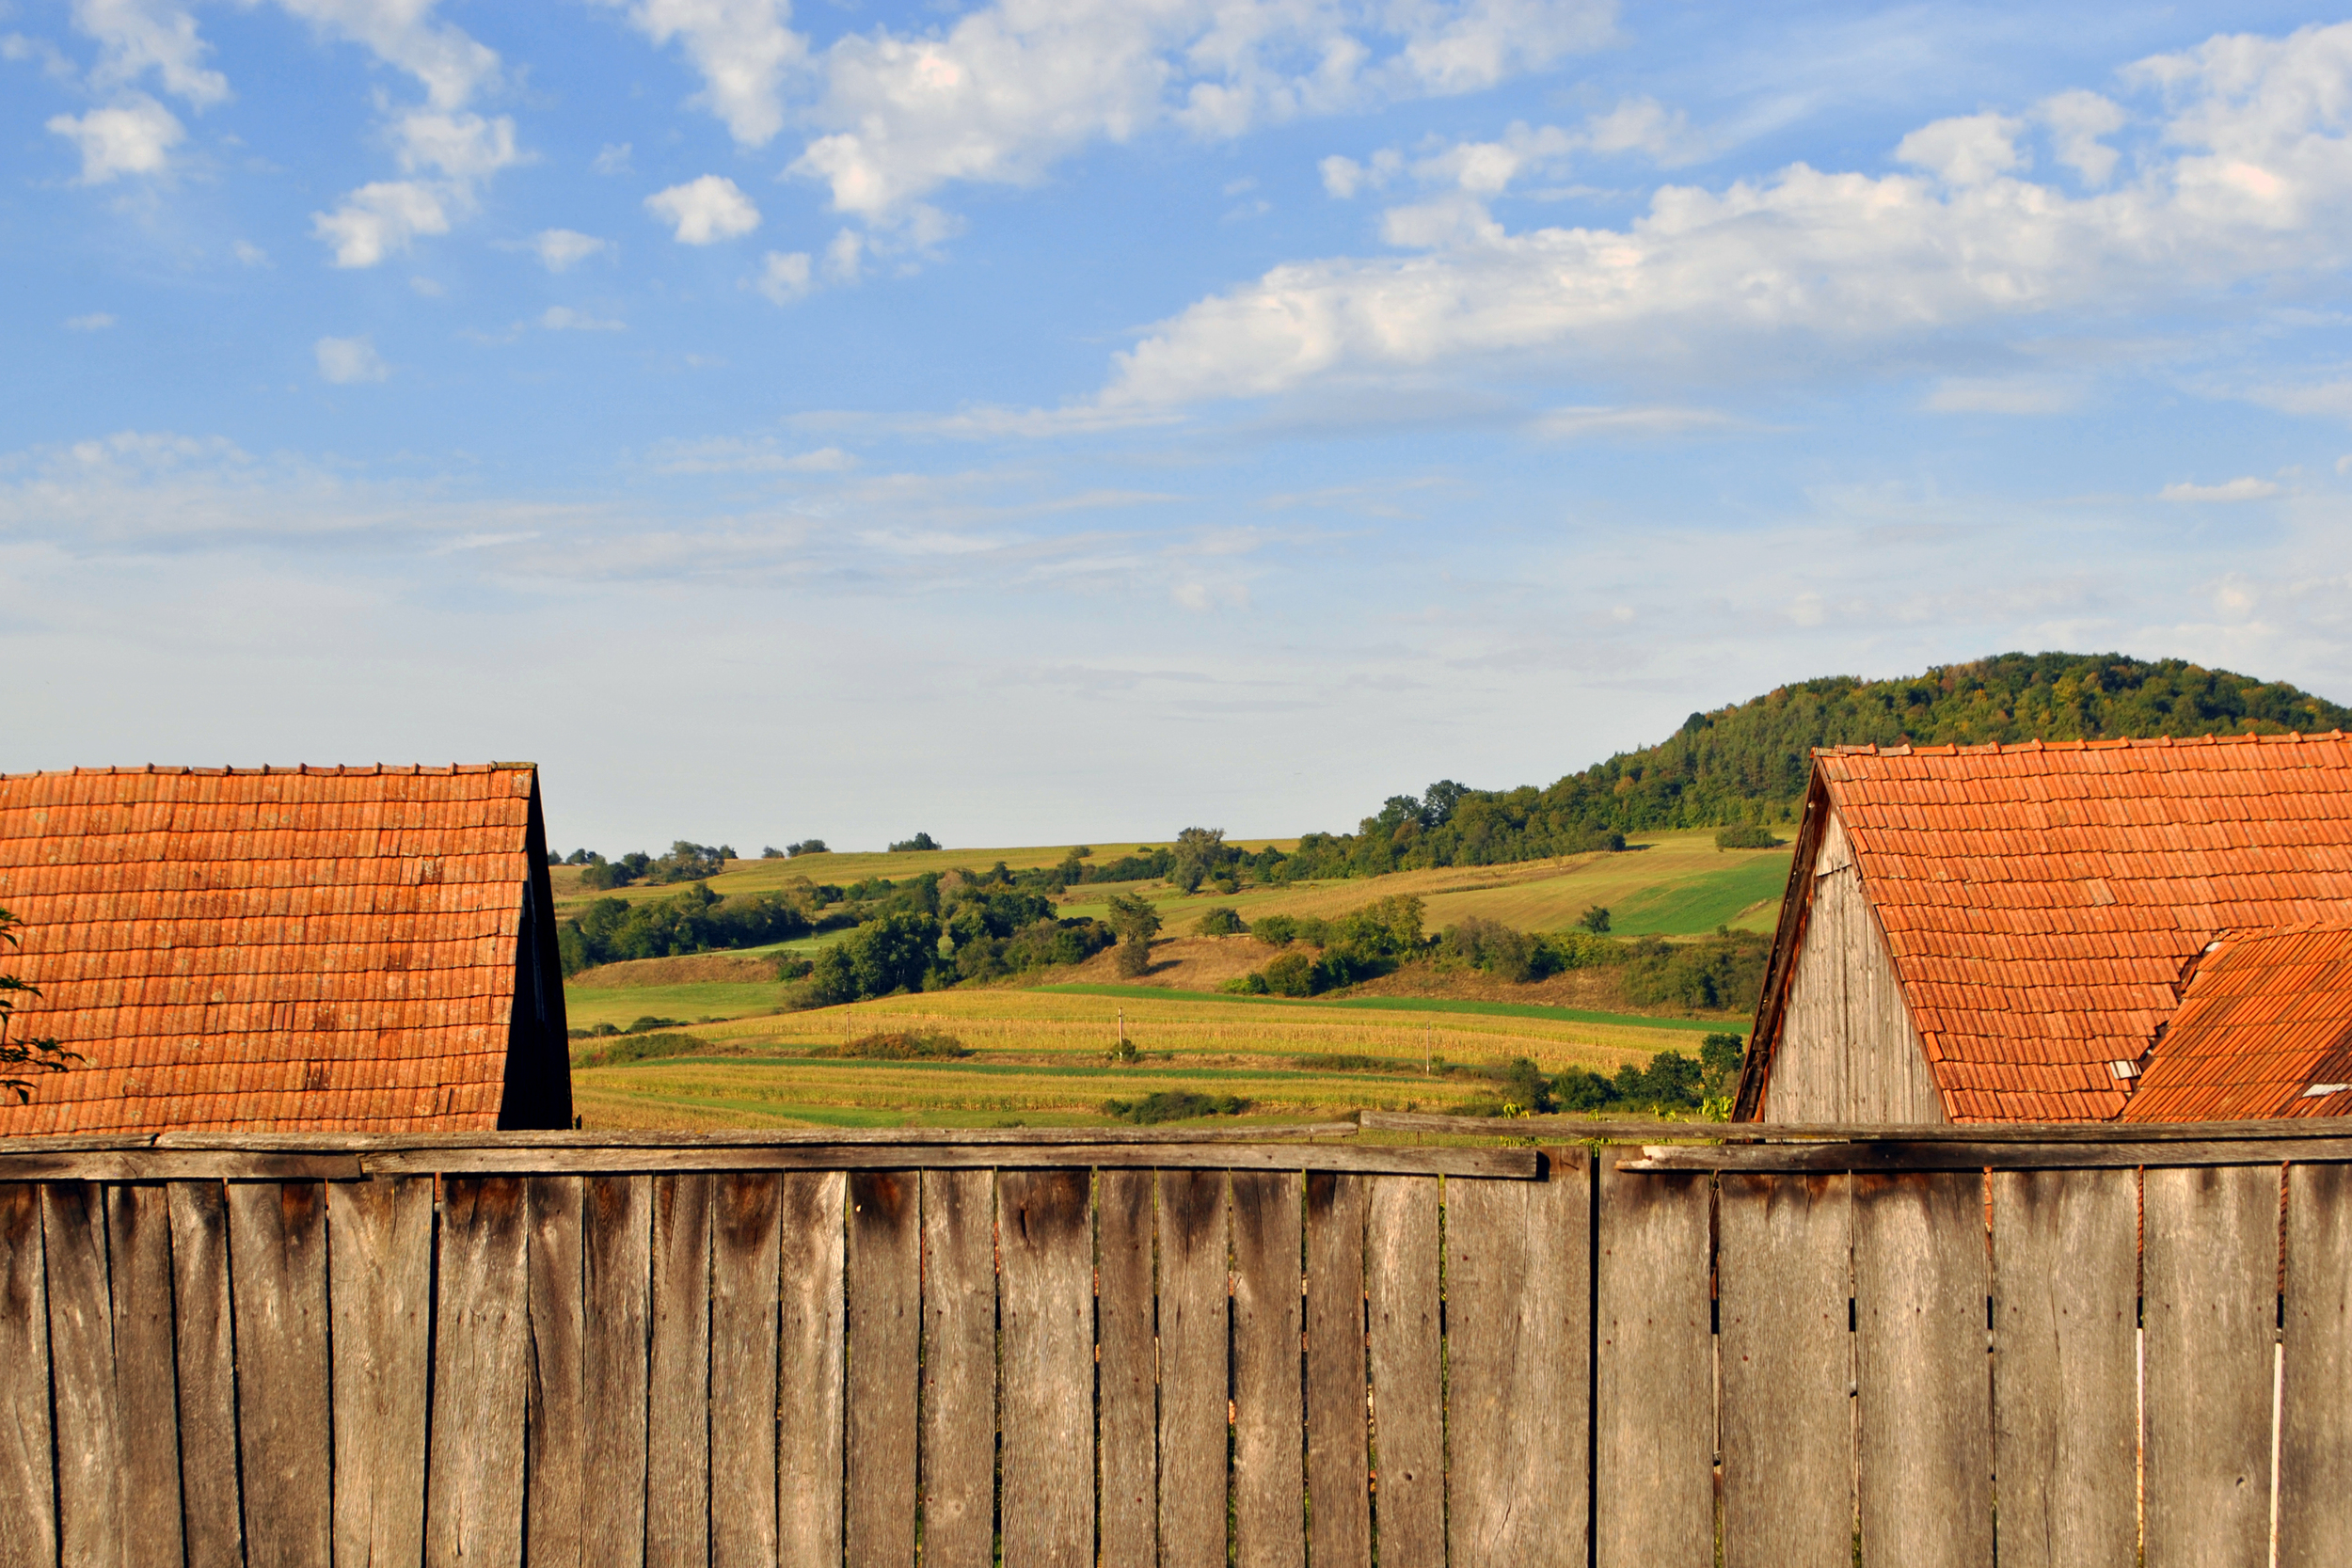 Fence and Roofs.jpg